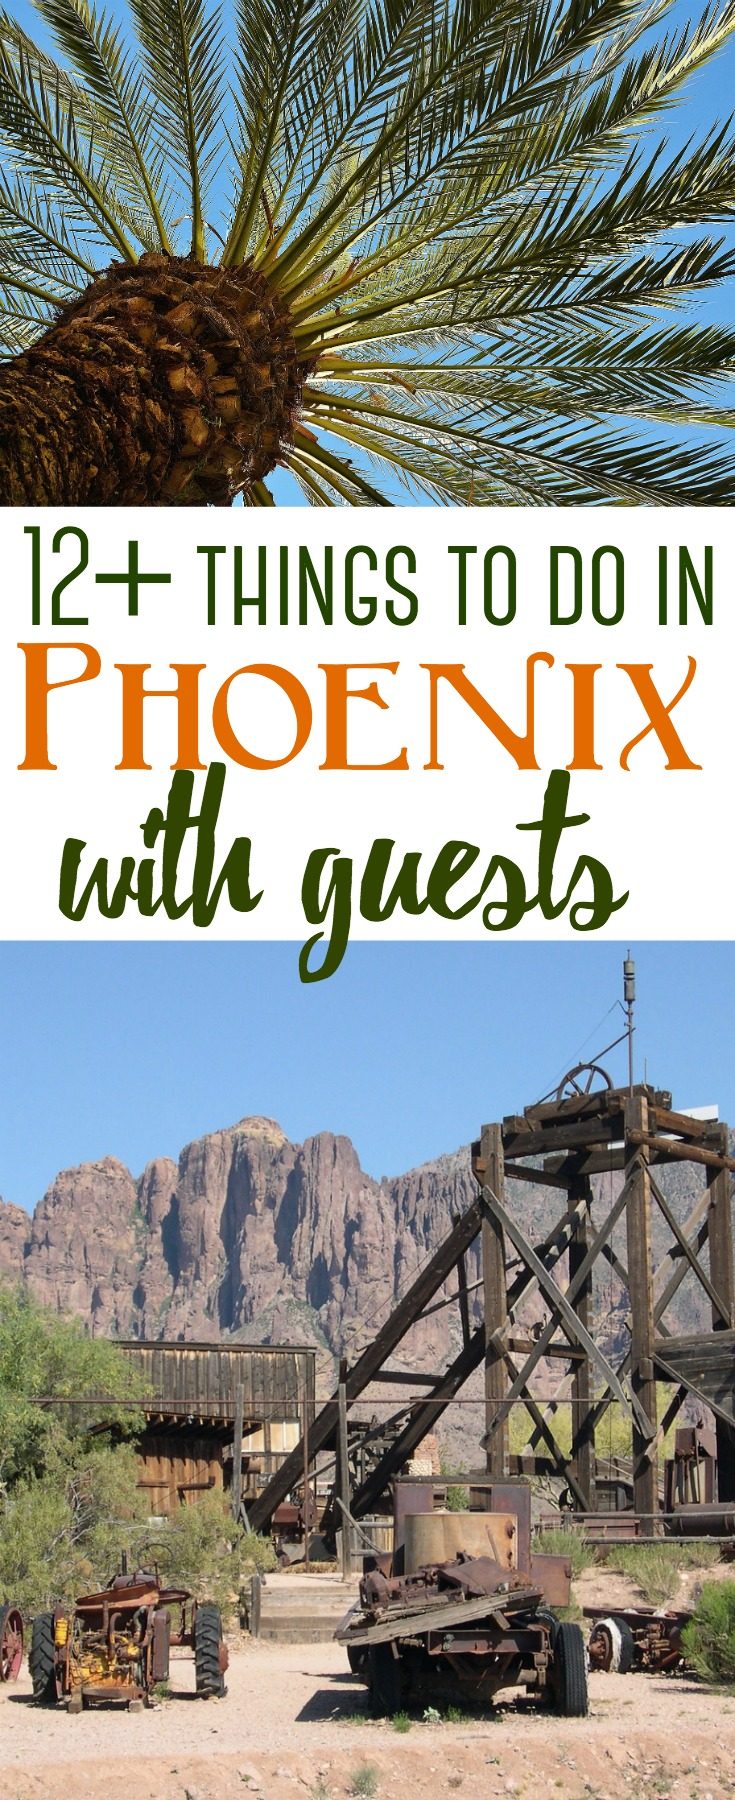 Over 12 Things to Do in Phoenix with Guests – The CentsAble